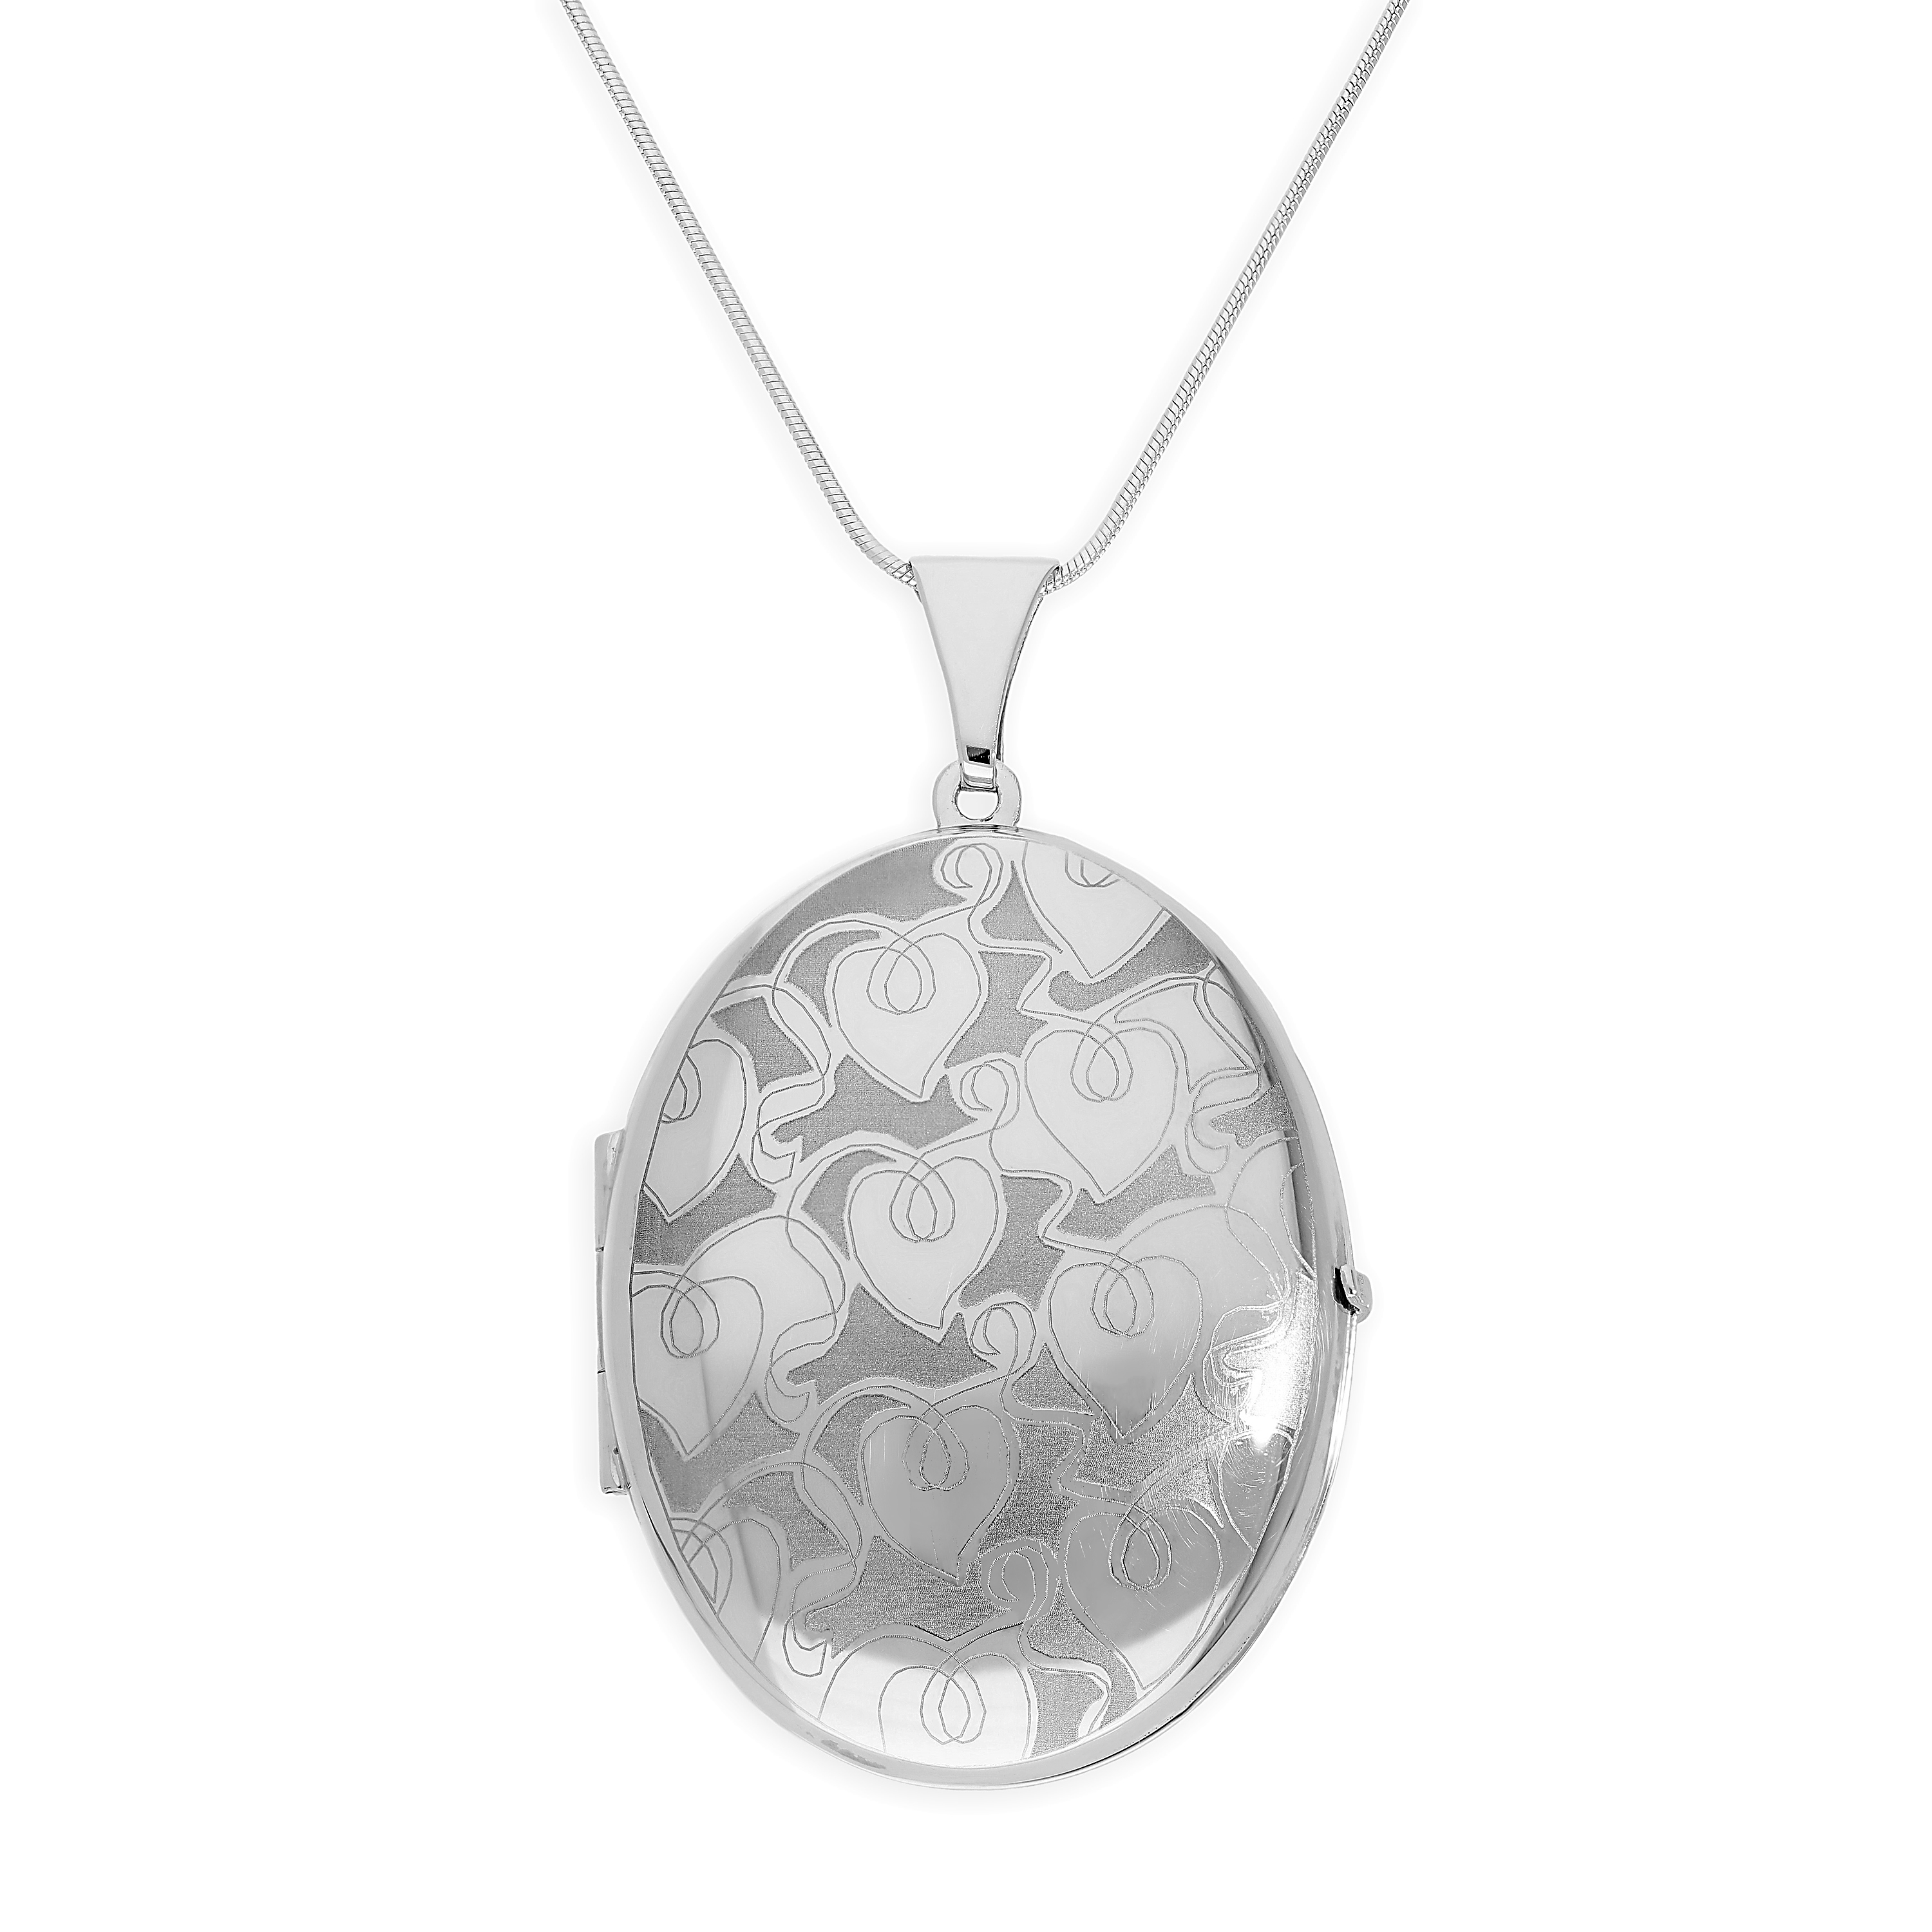 An image of Large Matt Sterling Silver Engravable Hearts Vines Oval Locket on 22 Inches Chai...